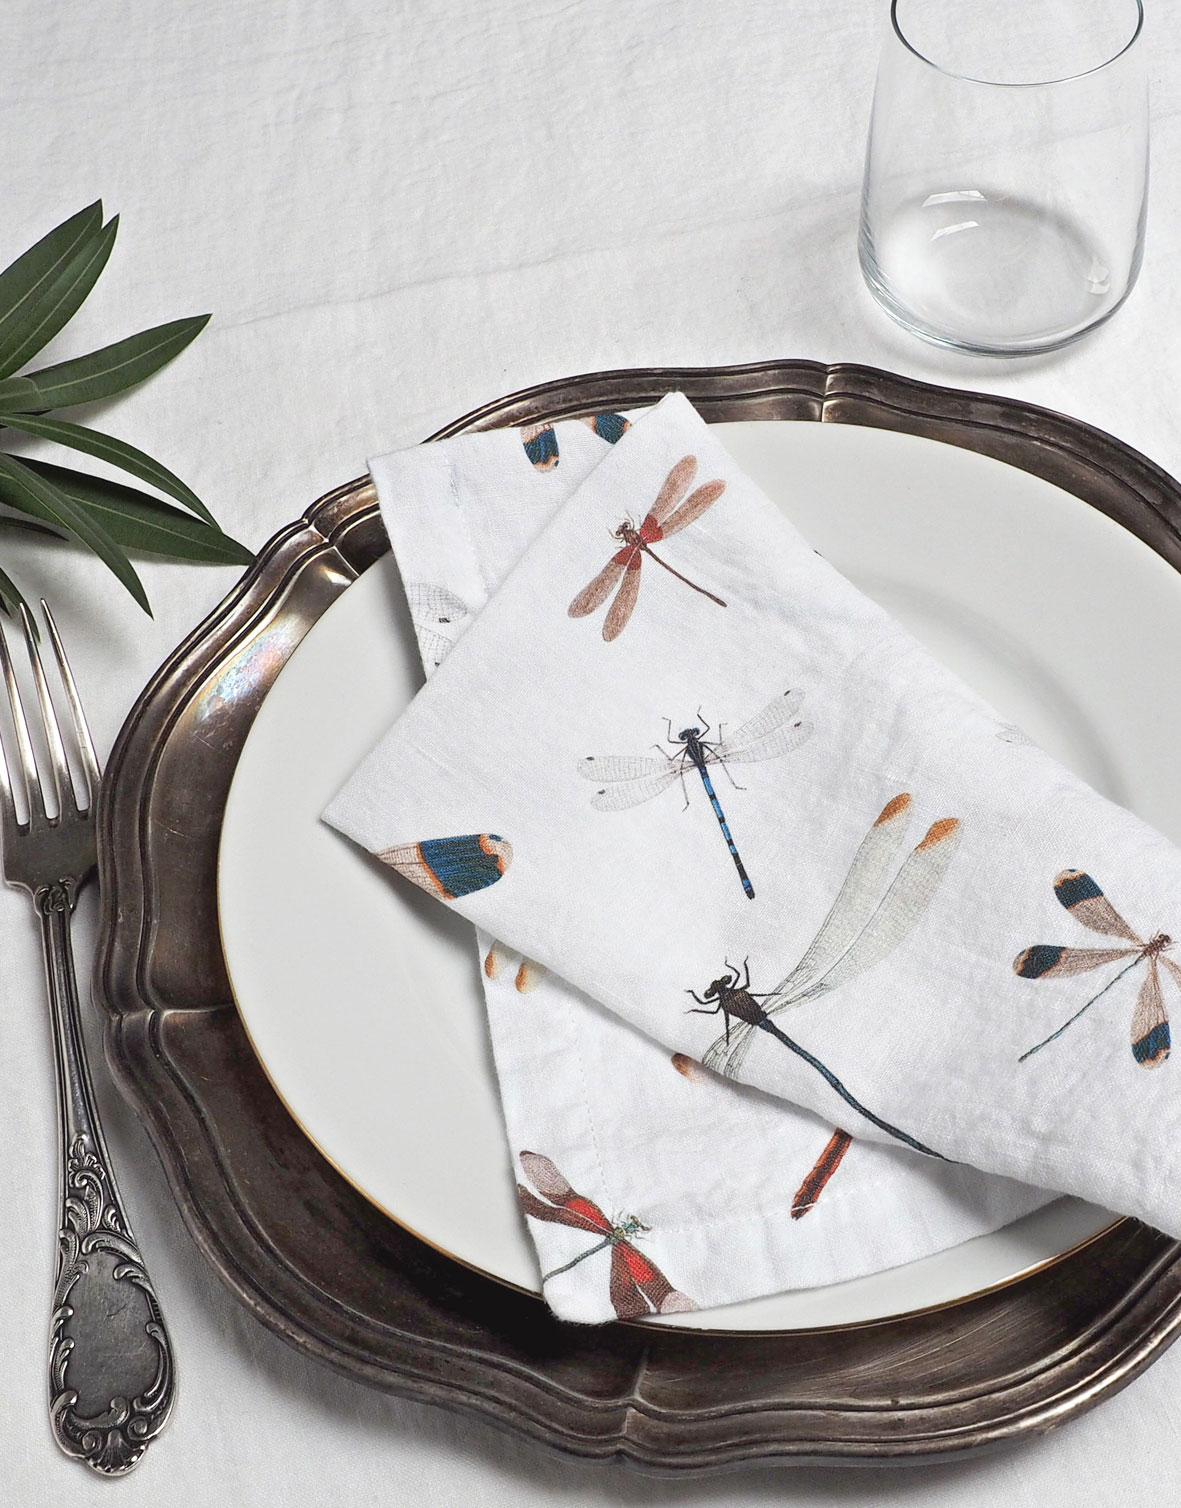 White Linen Napkins with Dragonflies from Linoroom